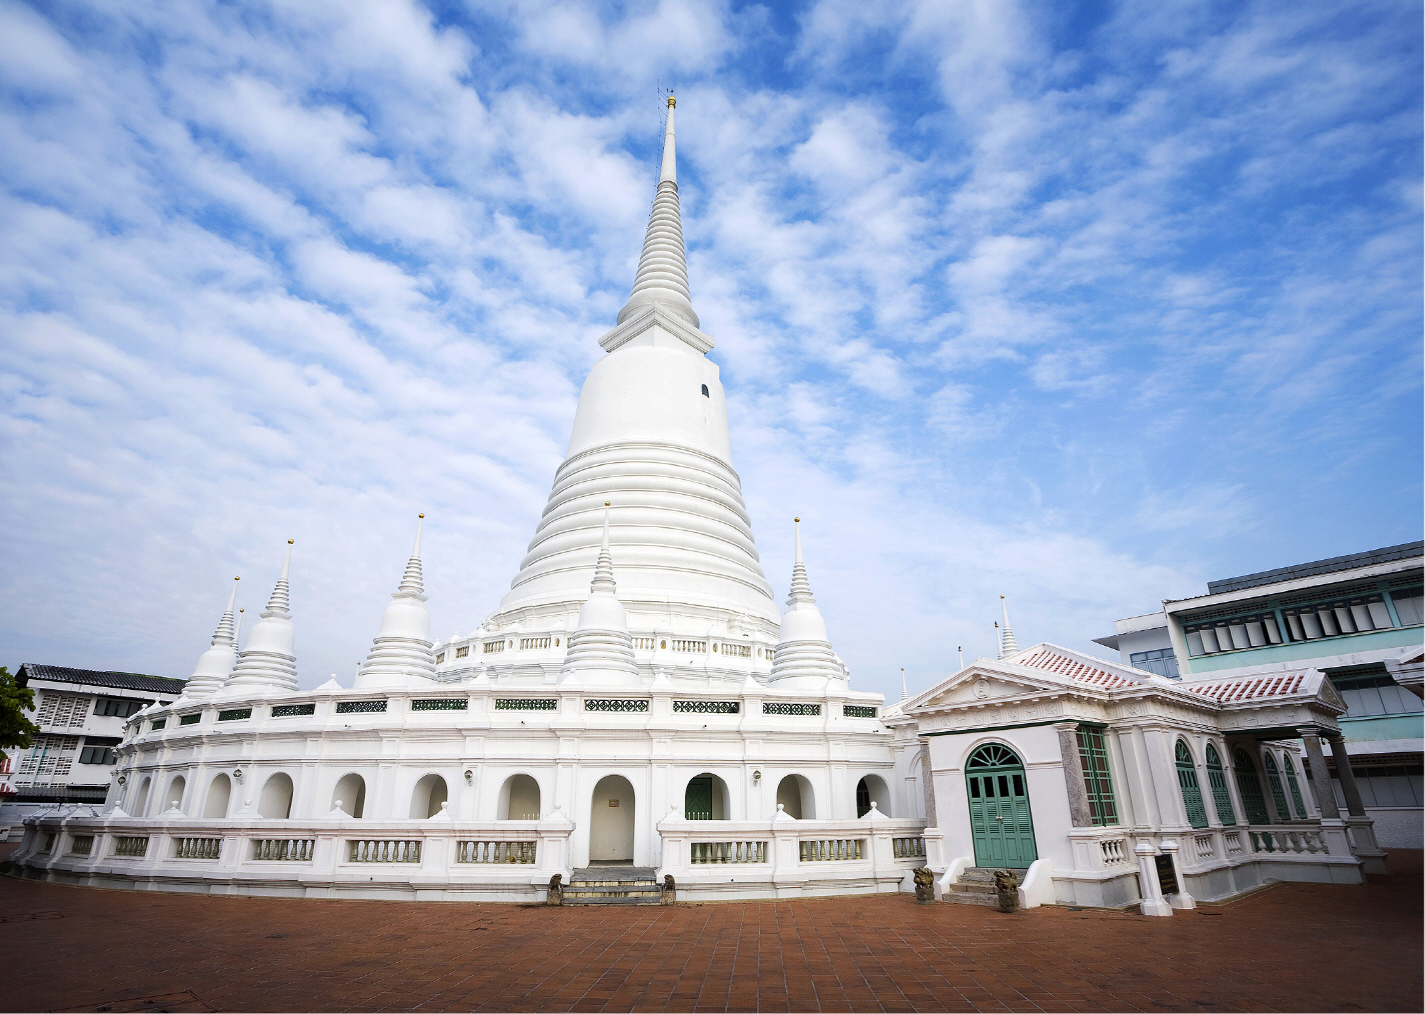 Wat Prayoon, Thailand - Award of Excellence 2013